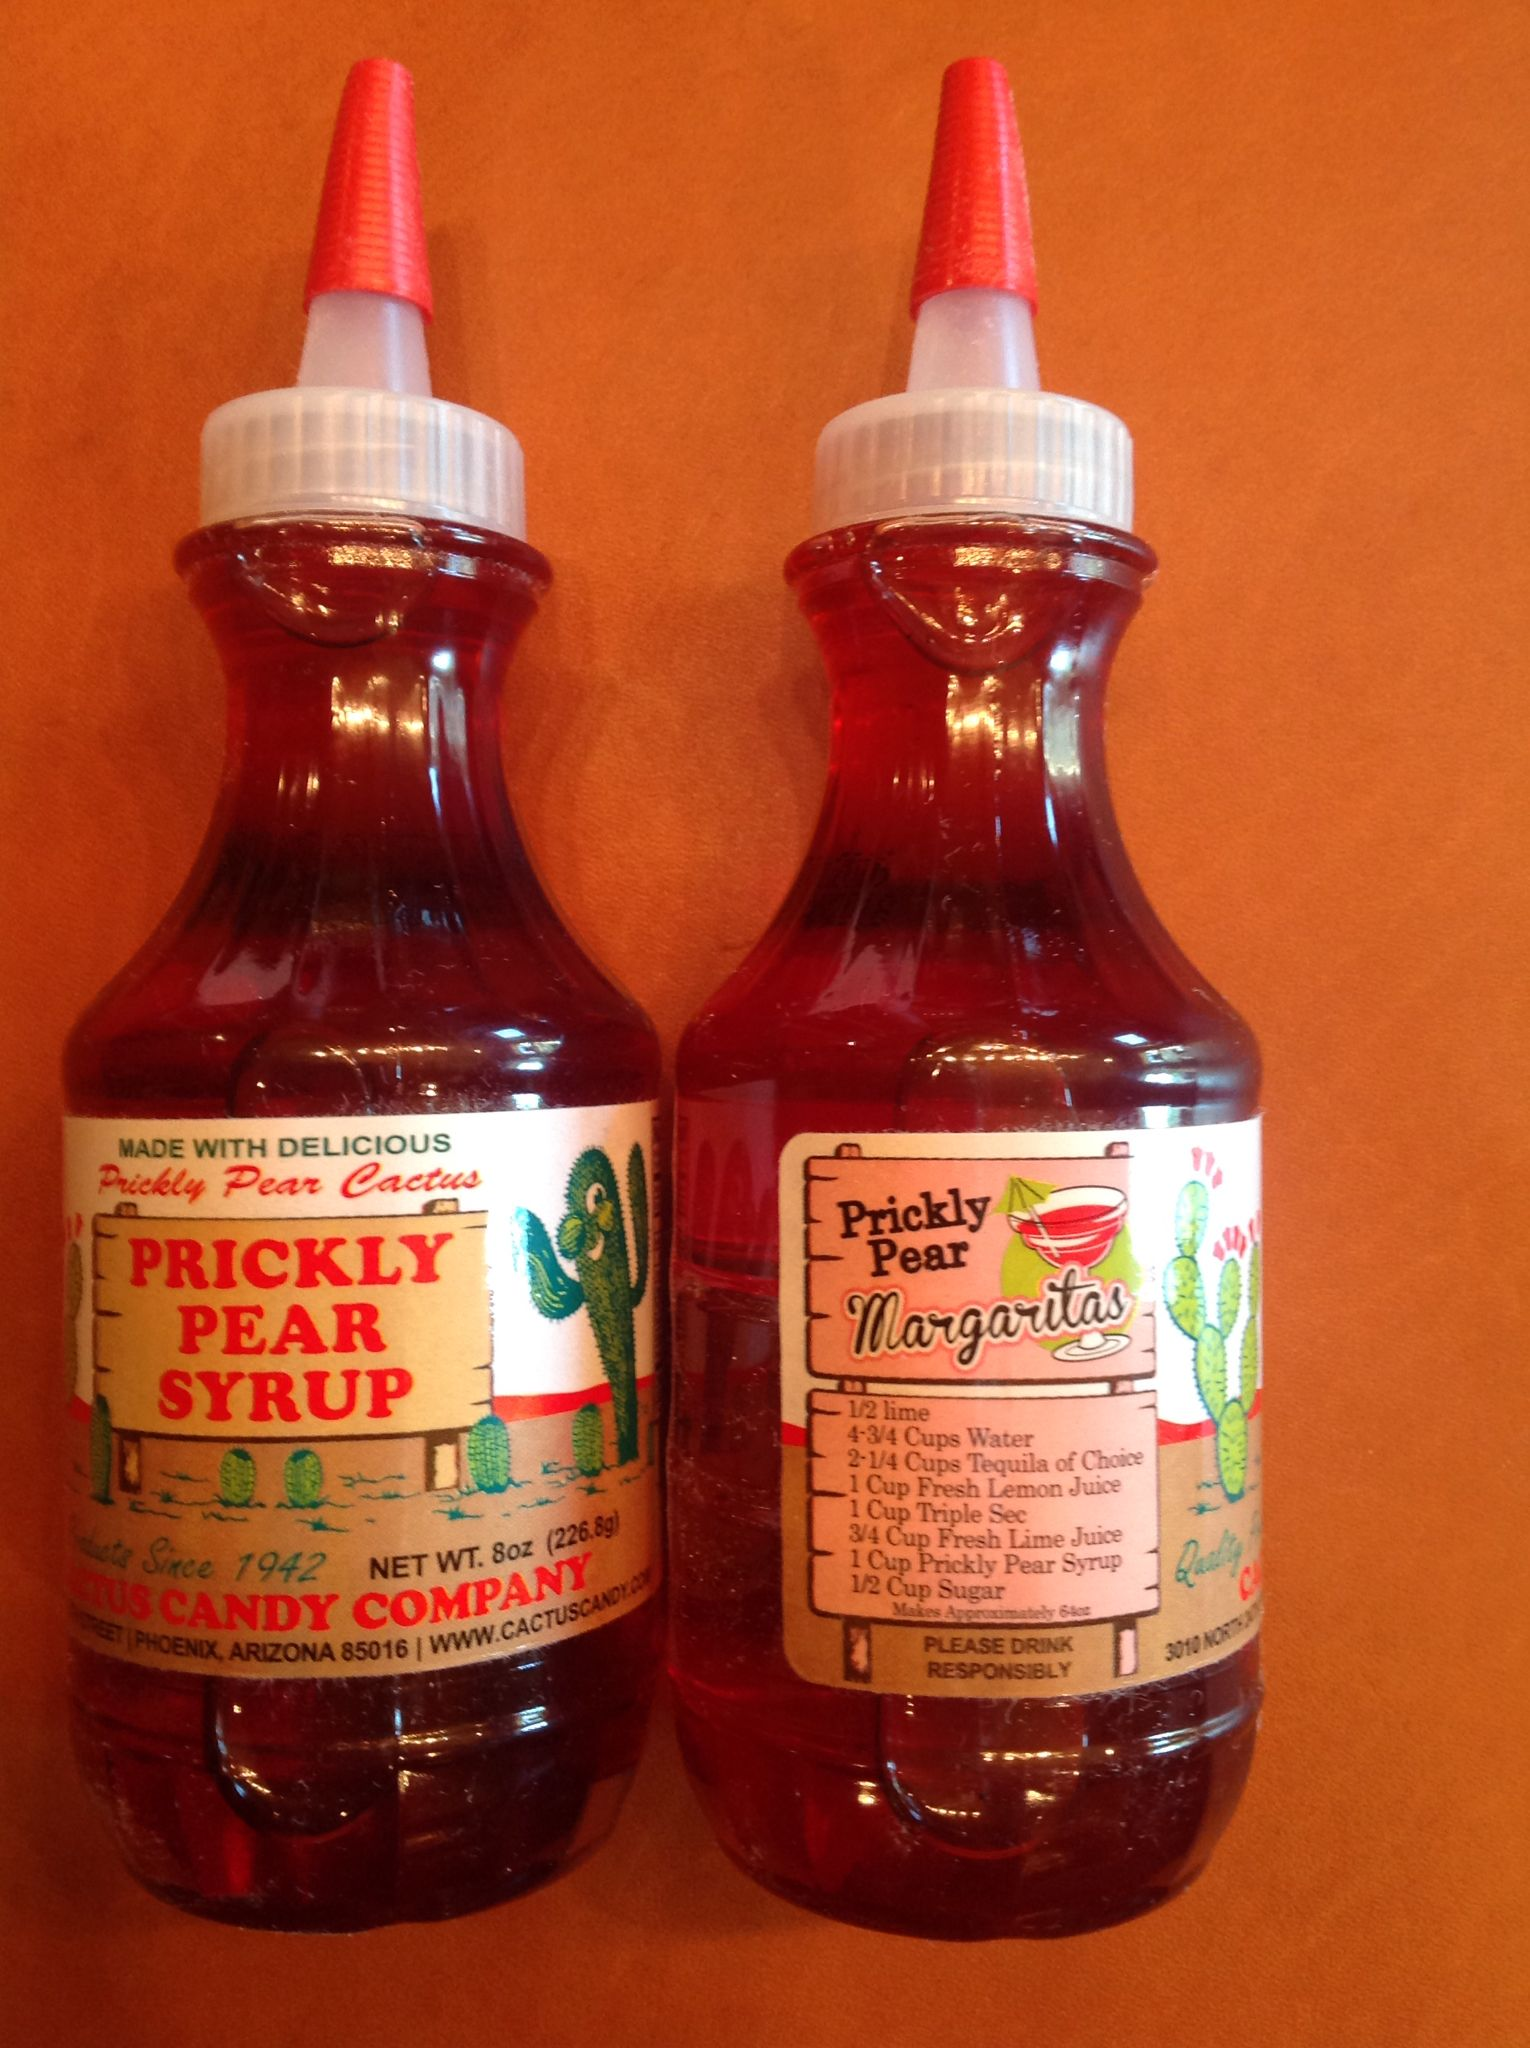 Prickly Pear Syrup From The Cactus Candy Company In Phoenix Recipe For Prickly Pear Margaritas Included On Prickly Pear Margarita Prickly Pear Candy Companies